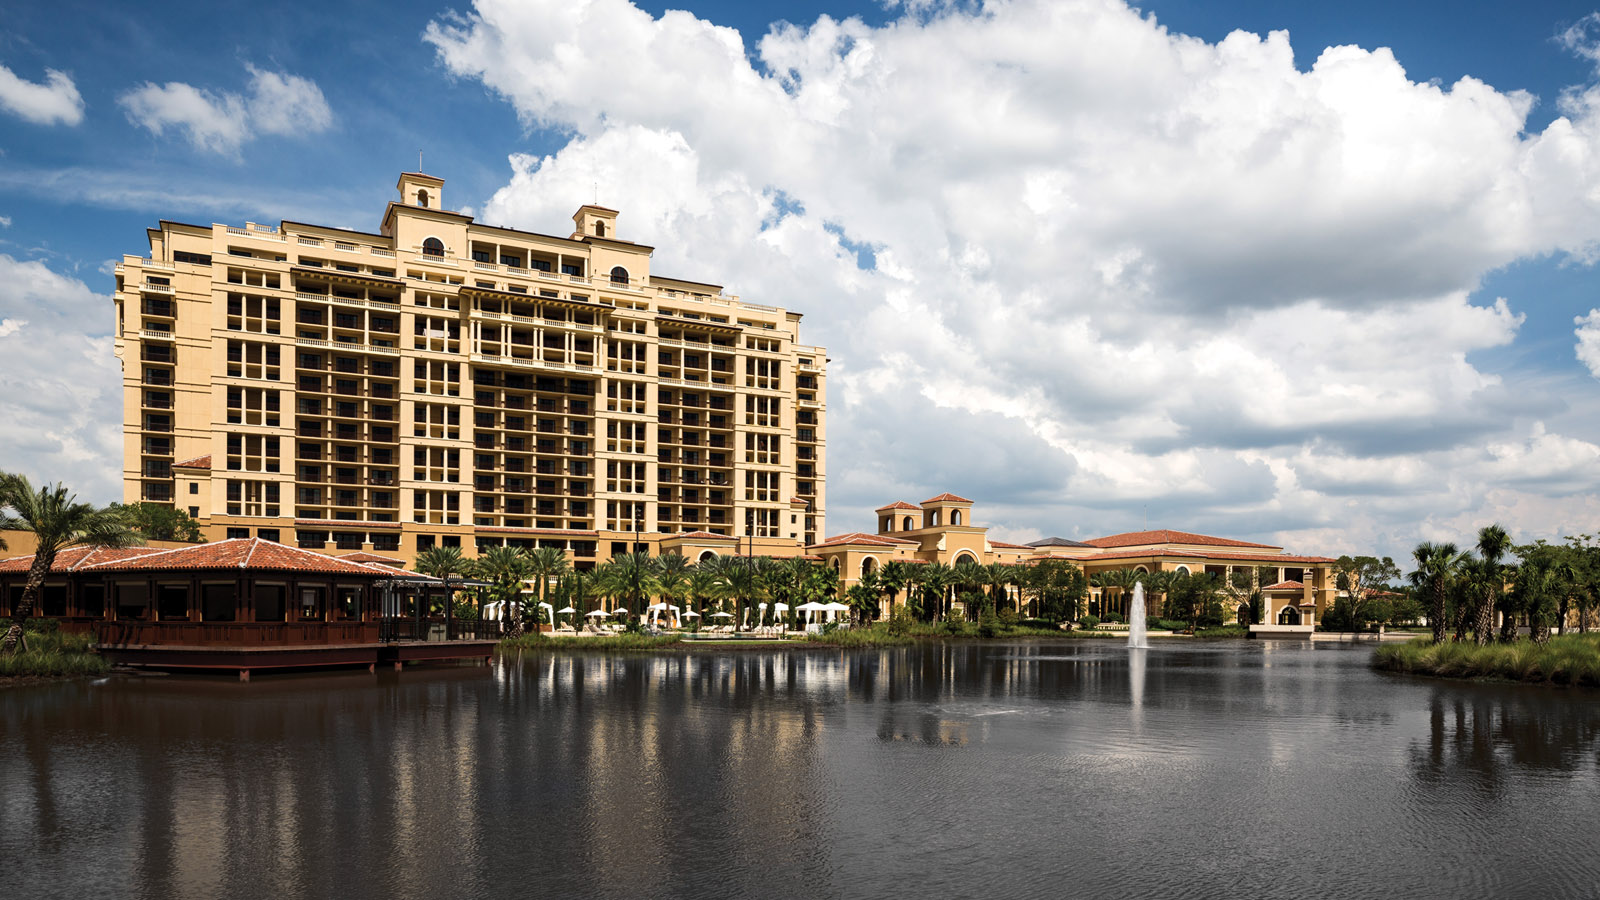 The Four Seasons Orlando